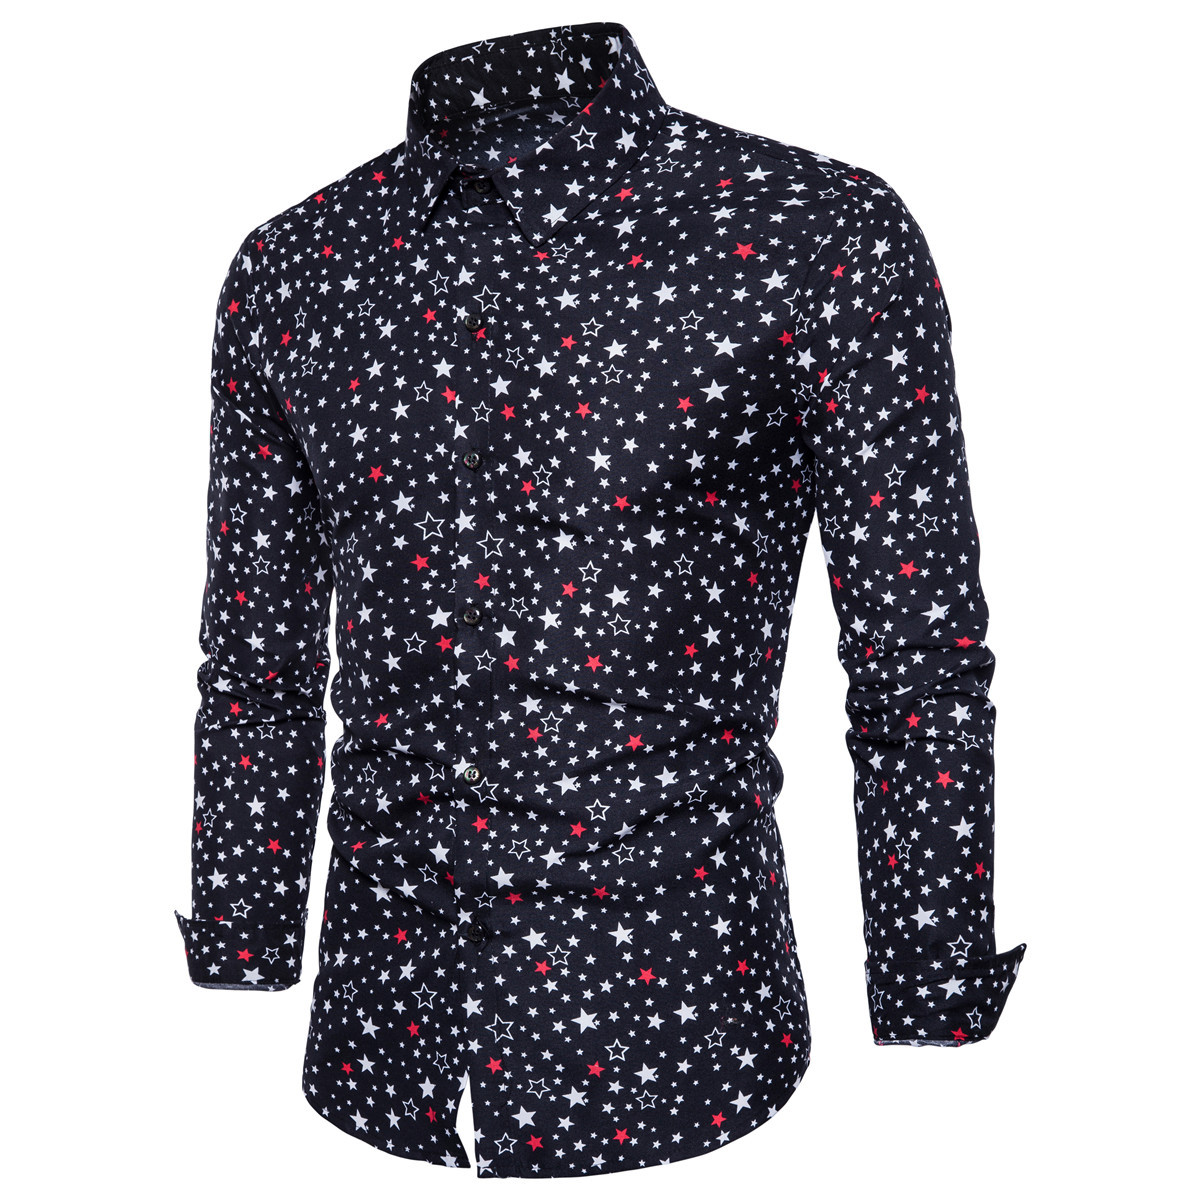 19 Years New Style Ouma  Electricity Supplier MEN'S Long-sleeved Shirt Digital Five-pointed Star Printed Long-sleeve